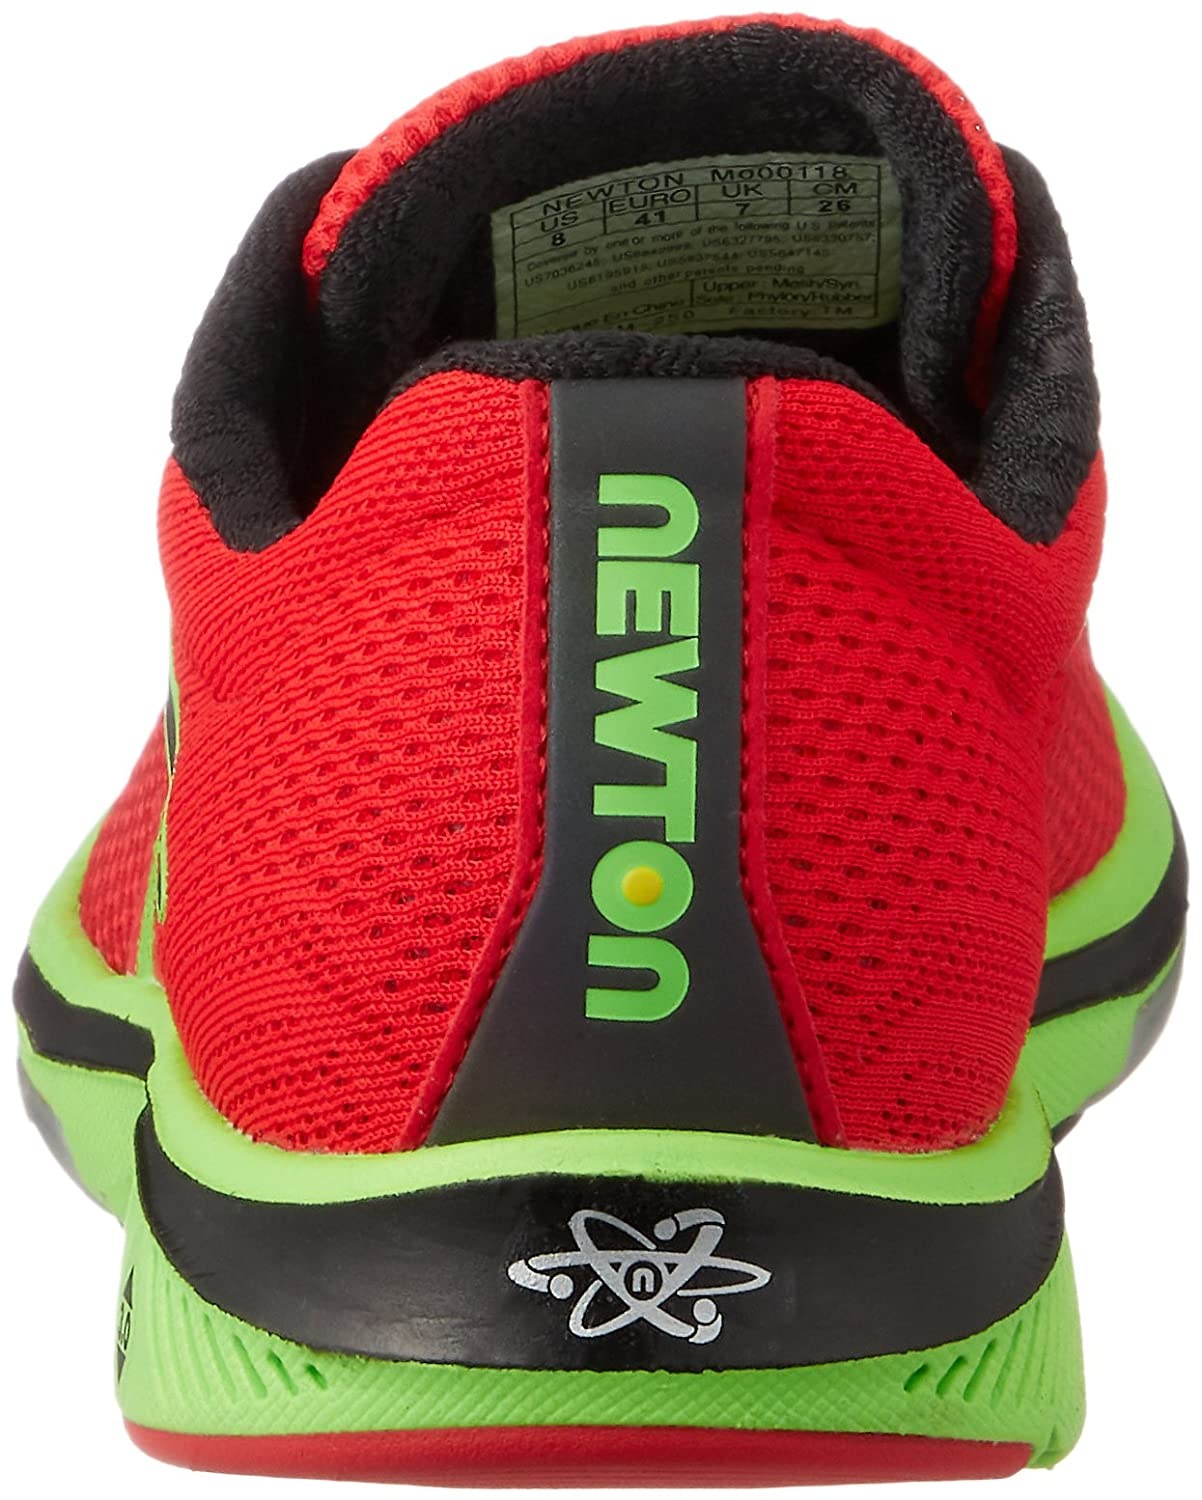 Newton Running Gravity 7, Zapatillas de Running para Hombre: Amazon.es: Zapatos y complementos